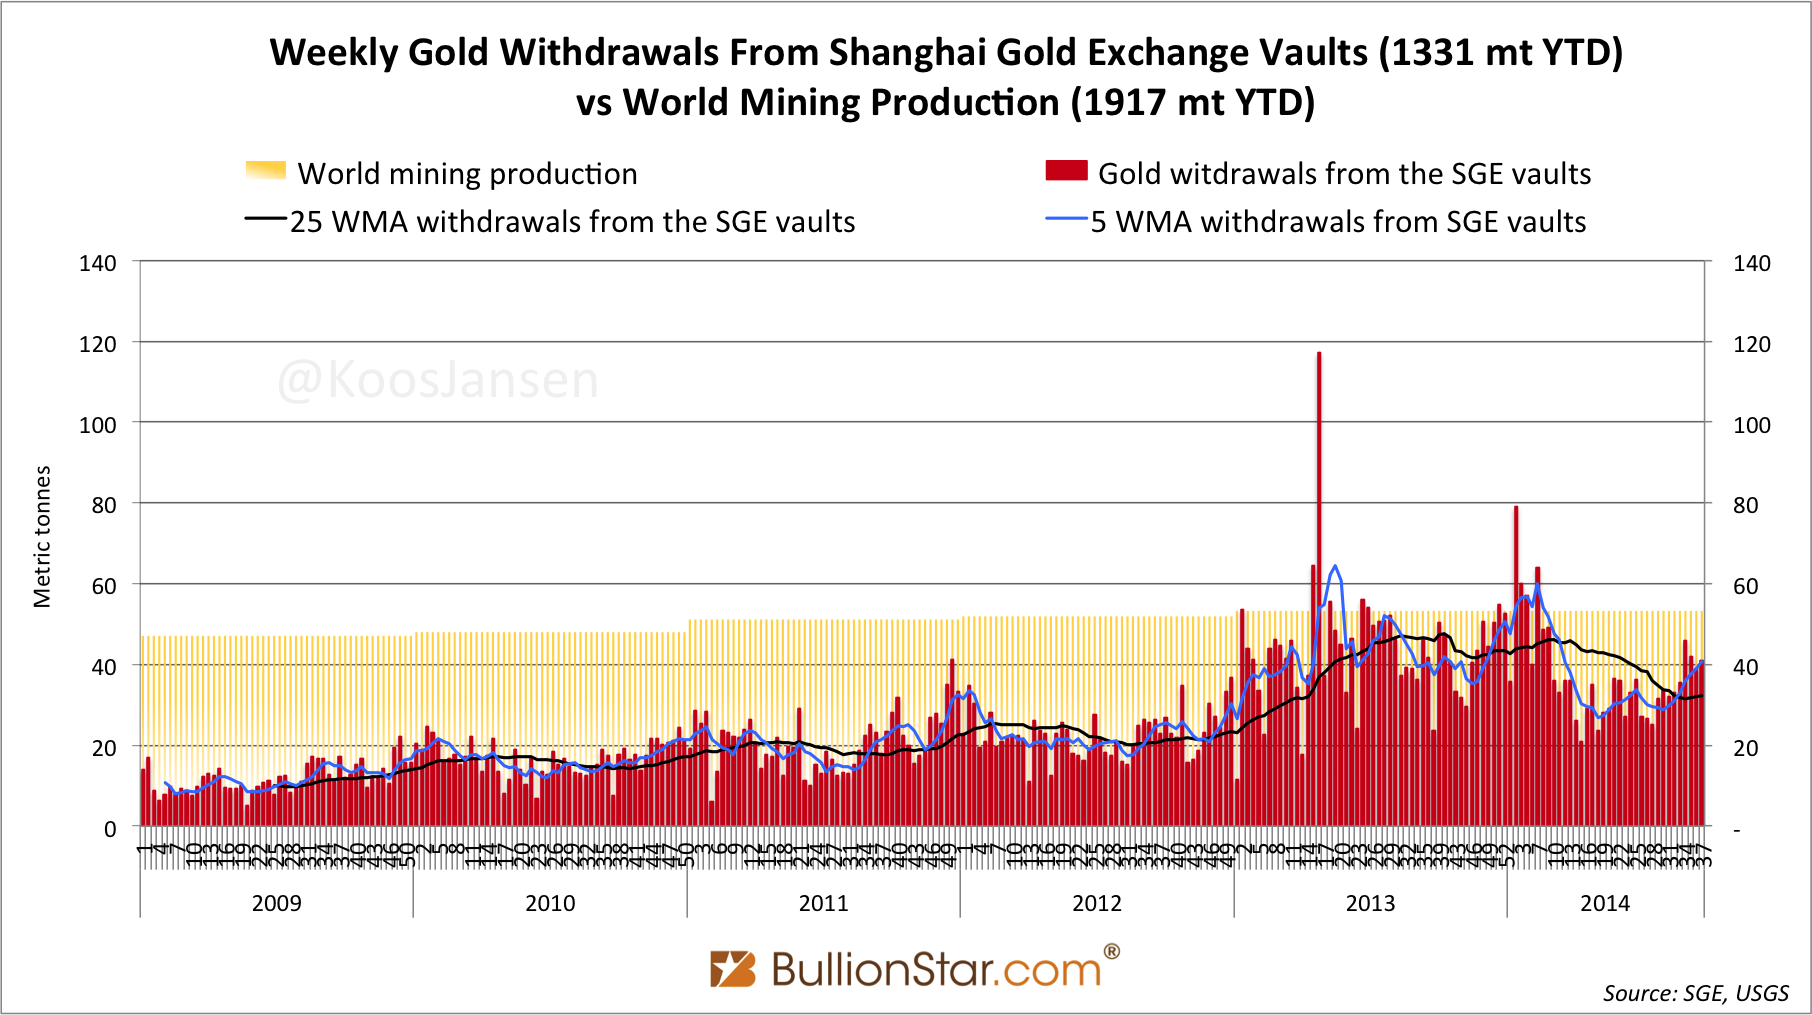 China Buys 45t Of Gold Ahead Of Golden Week